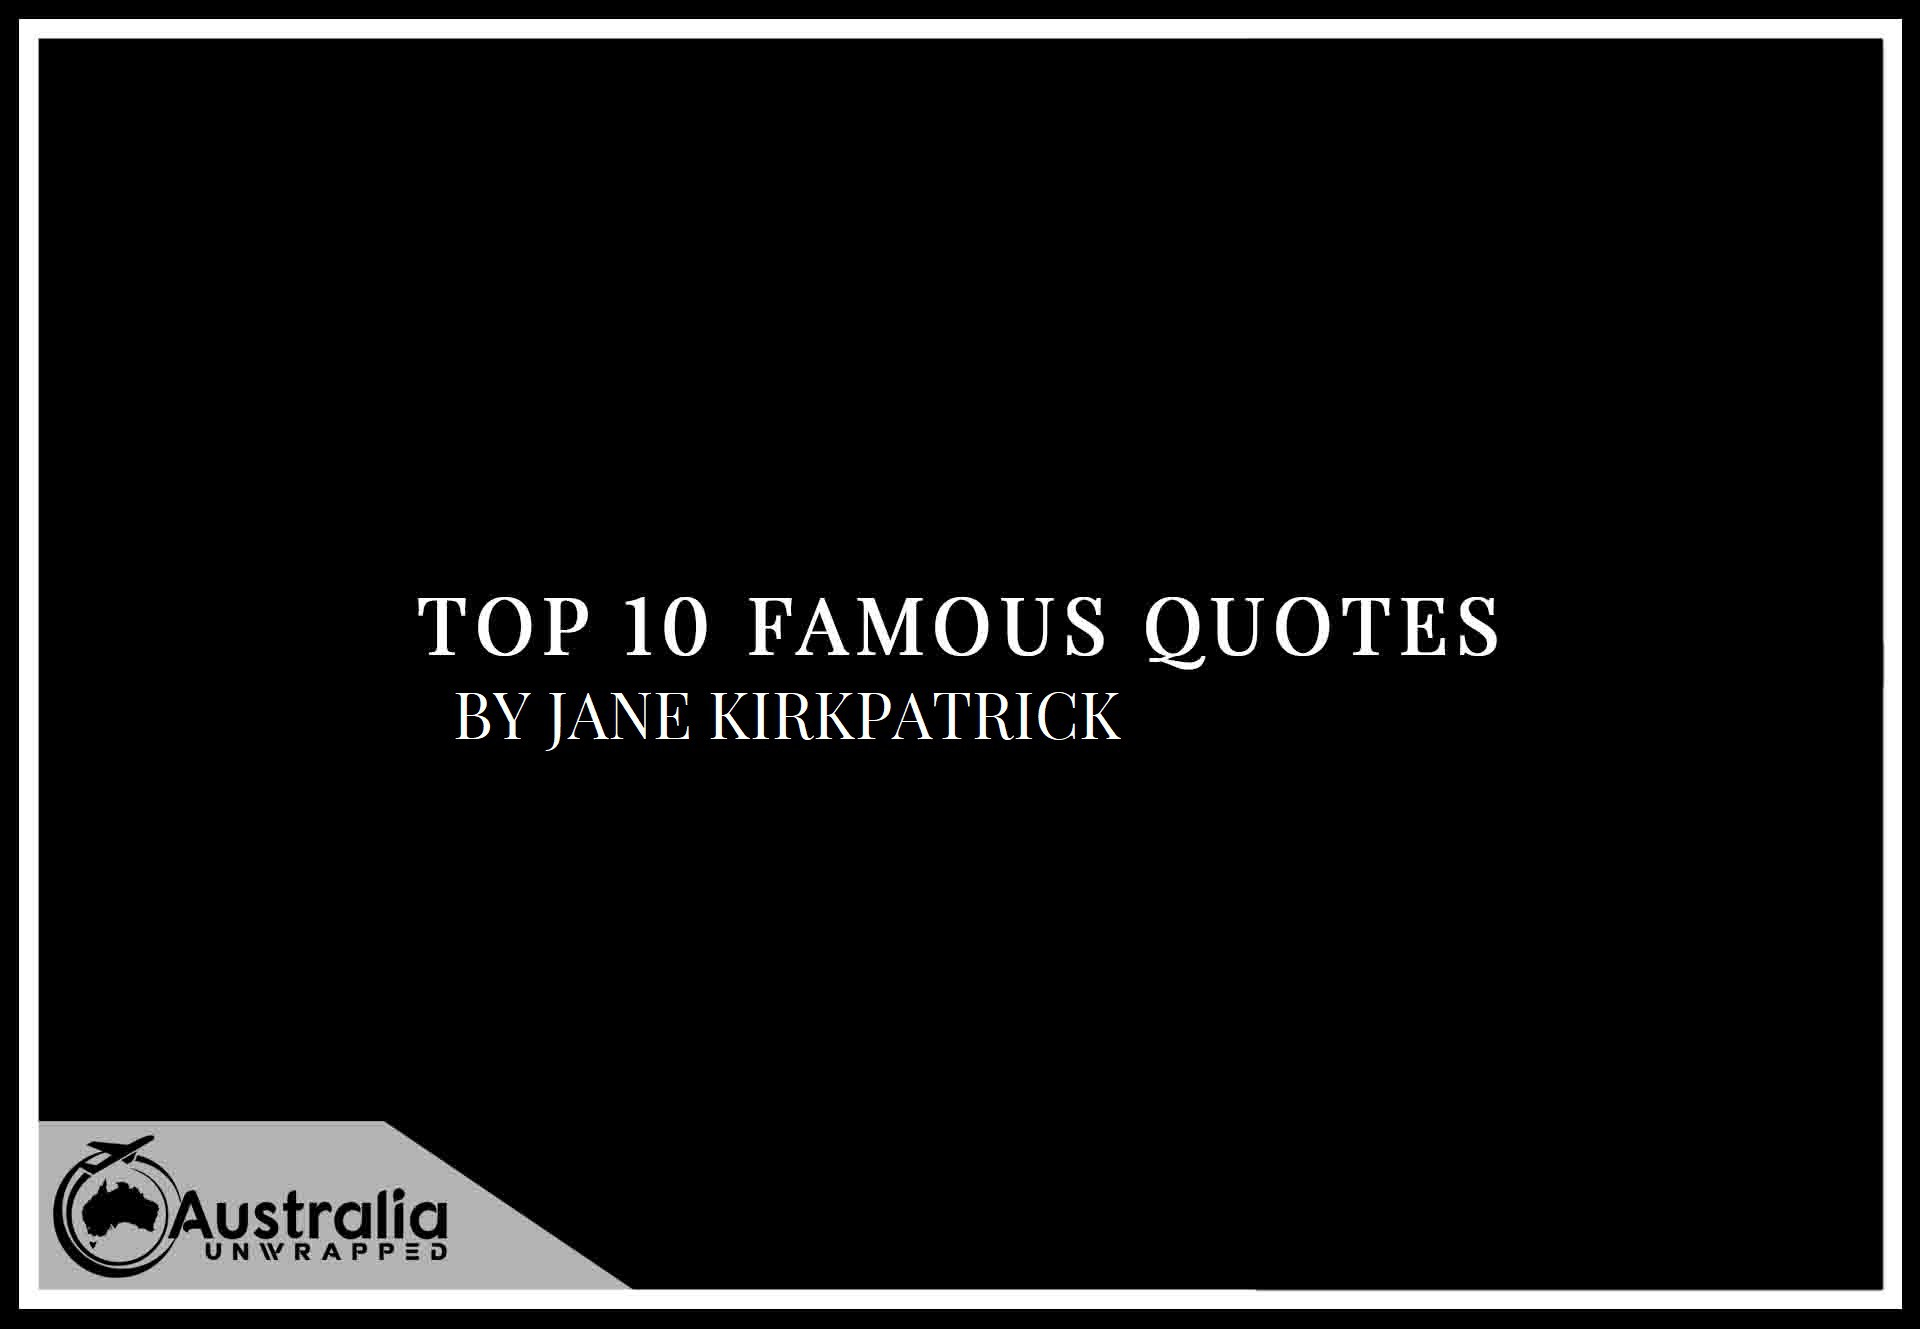 Top 10 Famous Quotes by Author Jane Kirkpatrick